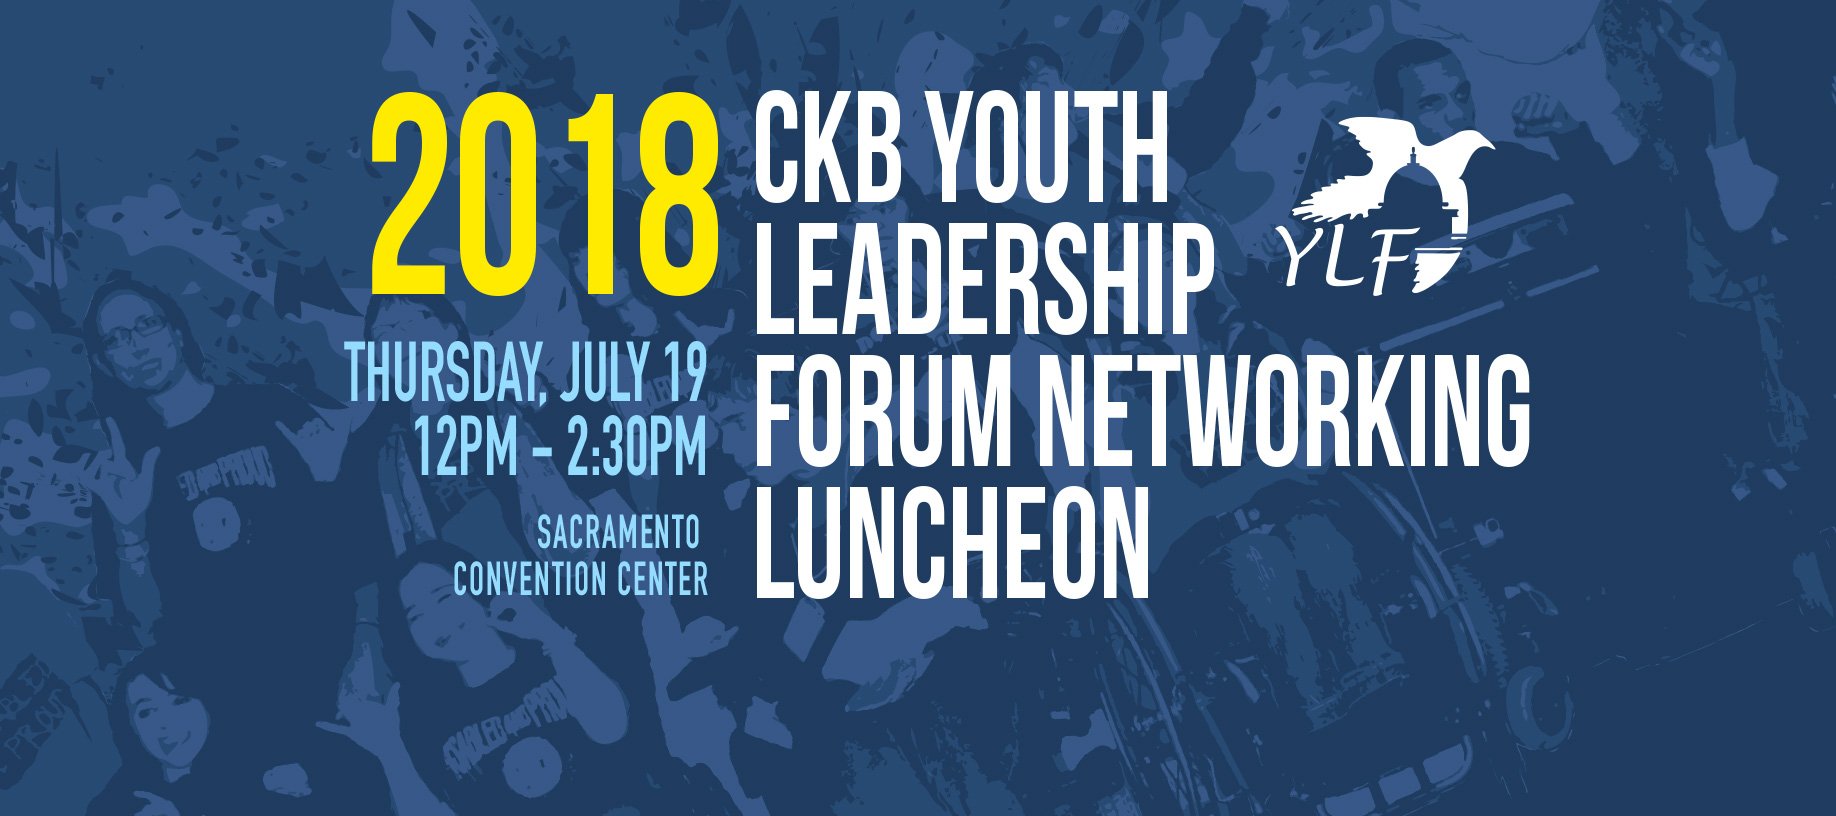 Banner of Banner of 2018 CKB Youth Leadership Forum Networking Luncheon. Thursday, July 19 - 12pm to 2:30pm. Sacramento Convention Center.